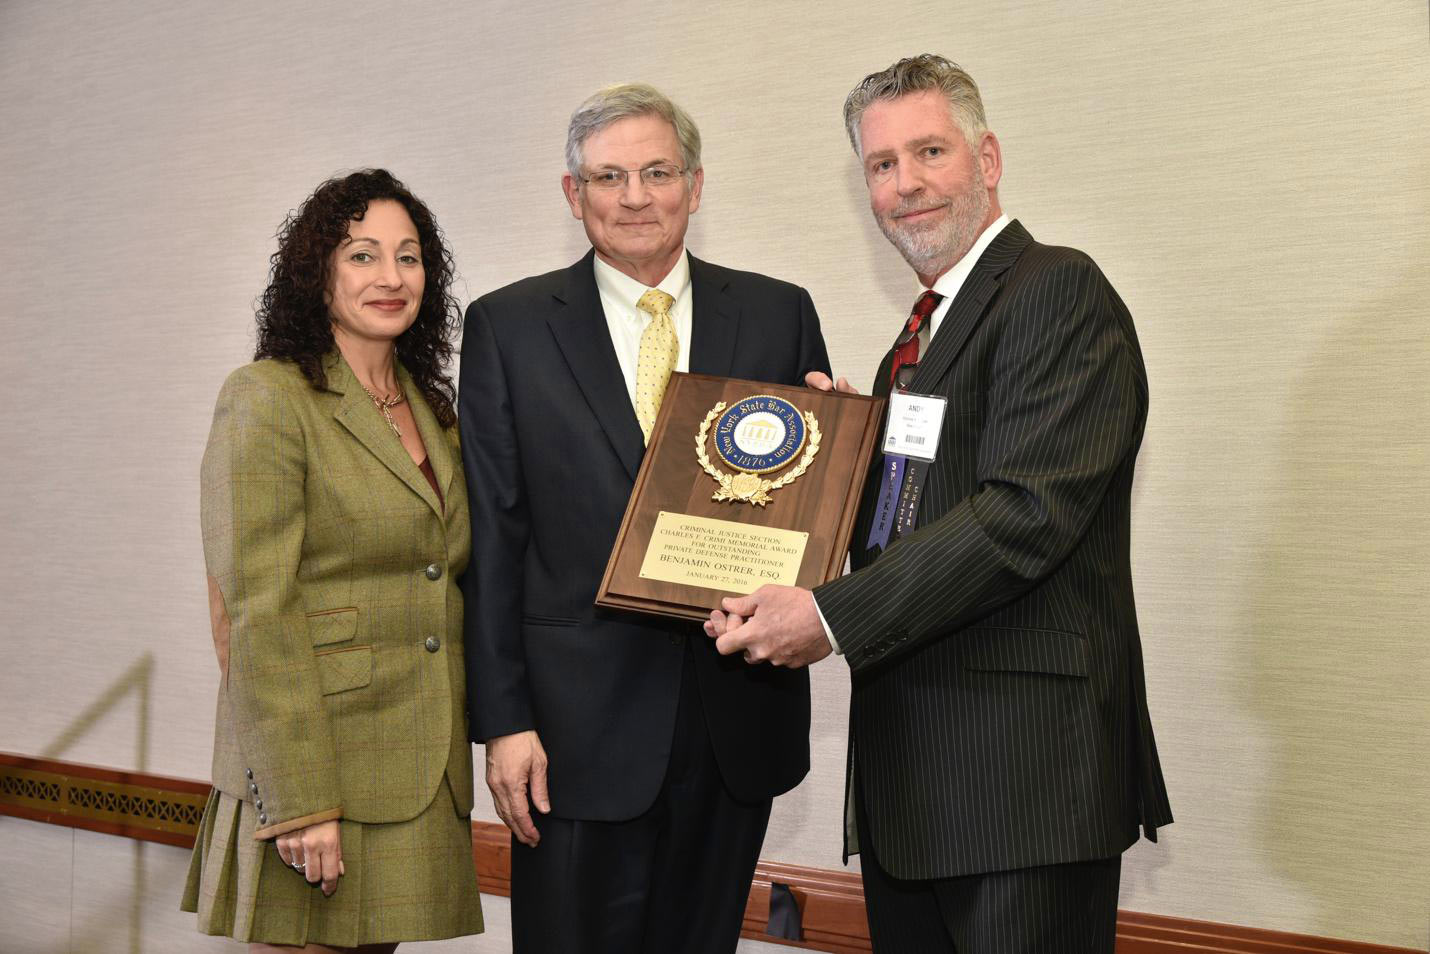 Ben Ostrer, Andrew Kossover and Sherry Levin Wallach Receiving NYSBA Criminal Justice Section Charles F. Crimi Memorial Award